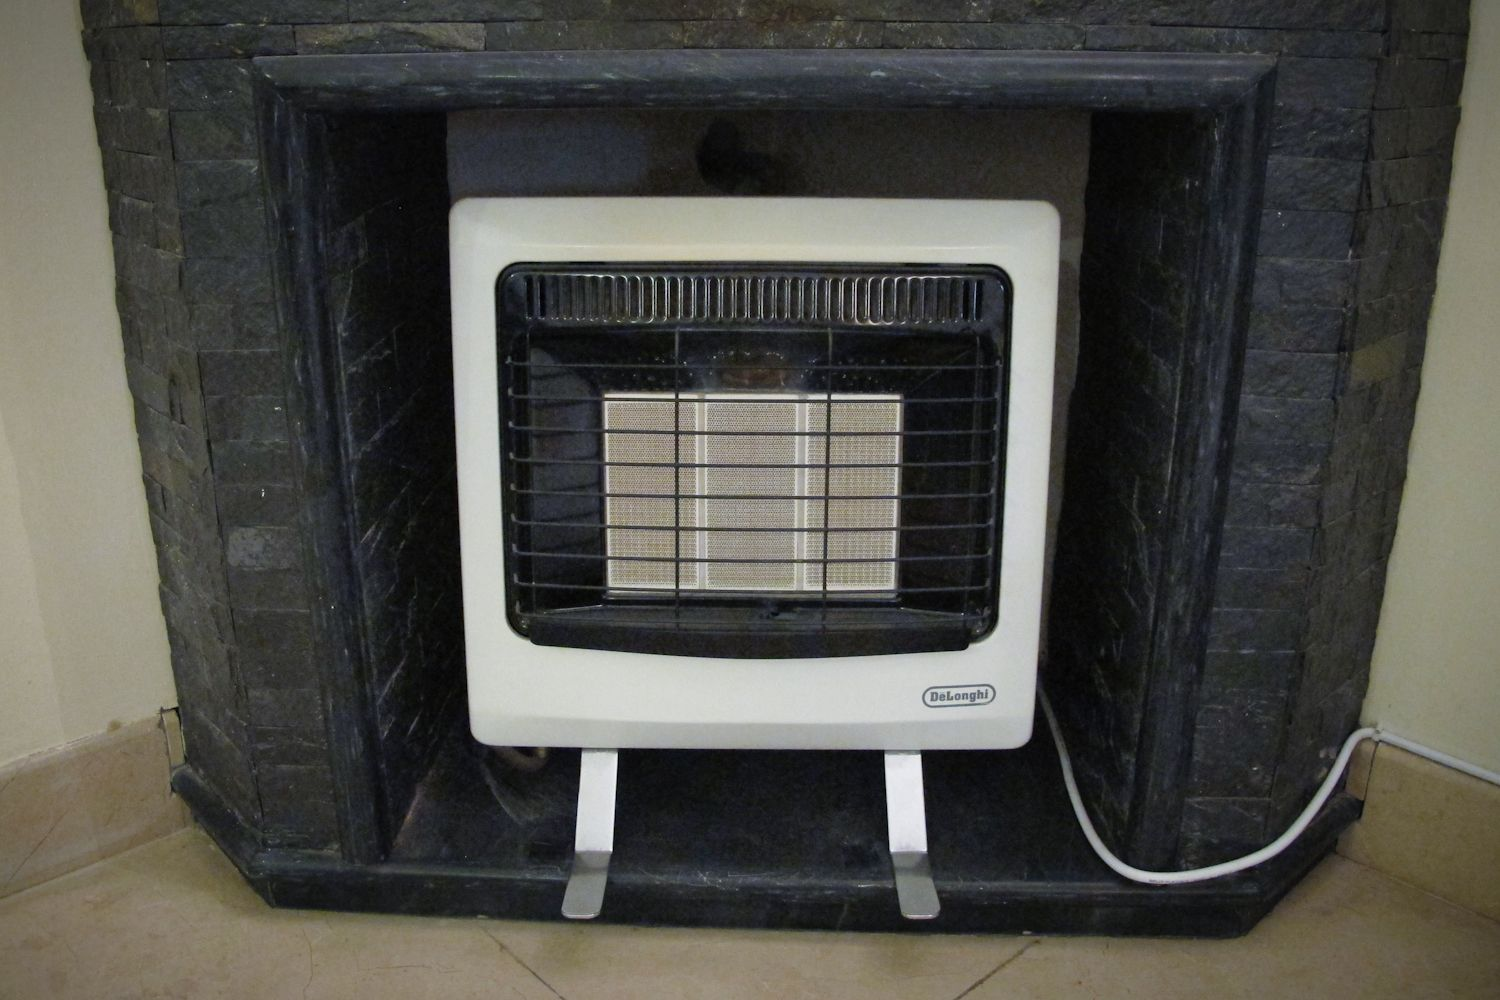 Six Delonghi Gas Heaters Wh 45 Nat Individually Retails For Over 15 000 Rs Asking 5 000 Rs Each 25 000 Rs For All Six Heaters Gas Heater Heater Delonghi